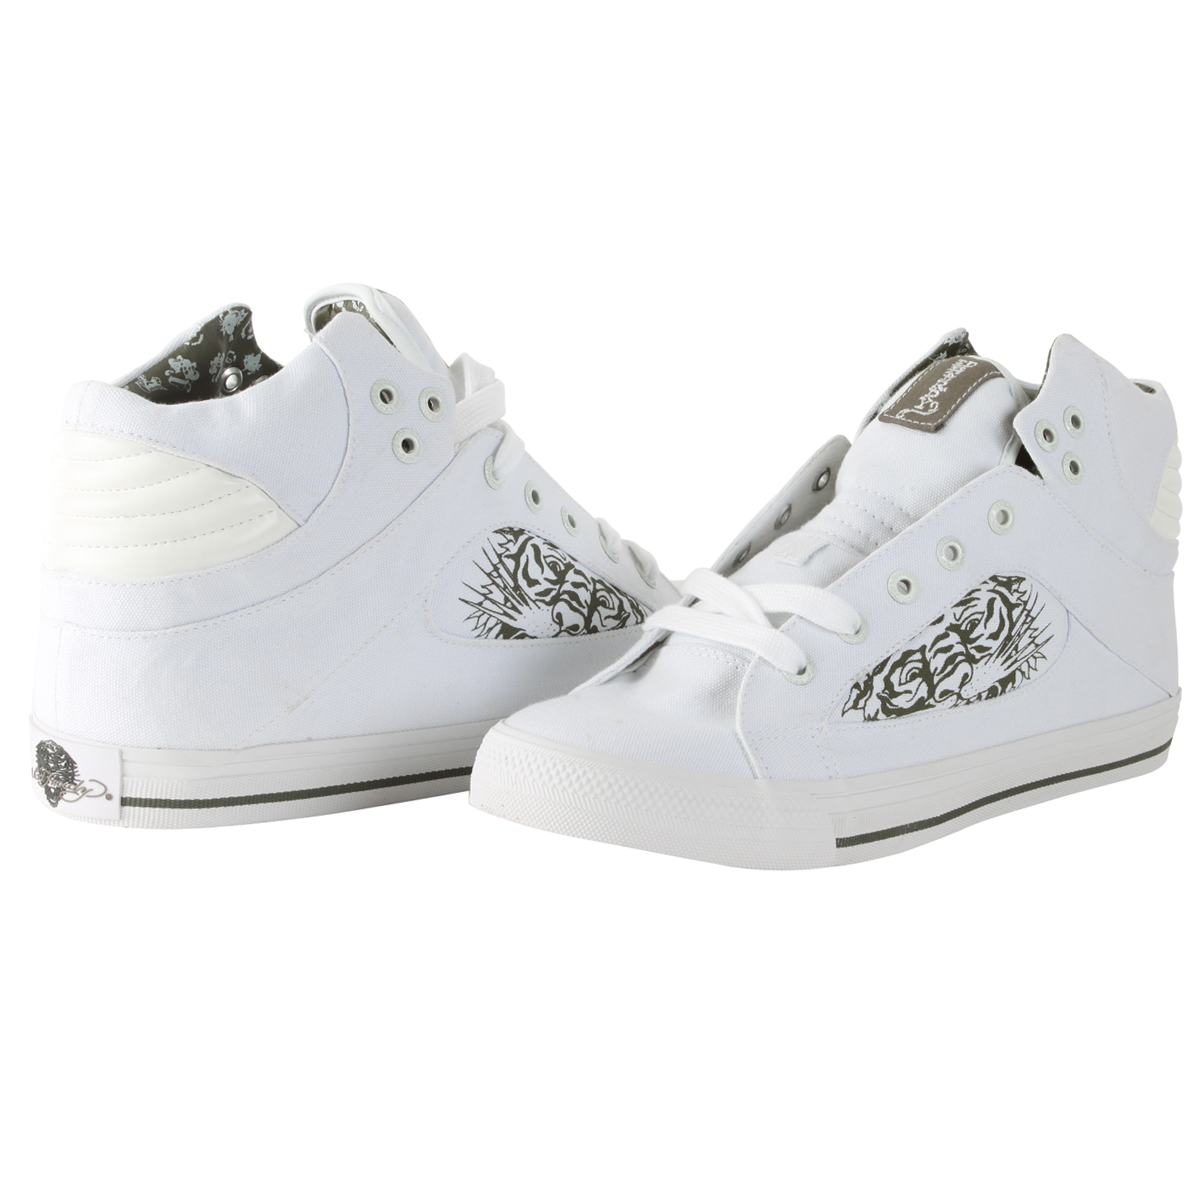 Ed Hardy Pendelton Highrise Shoe for Men - White